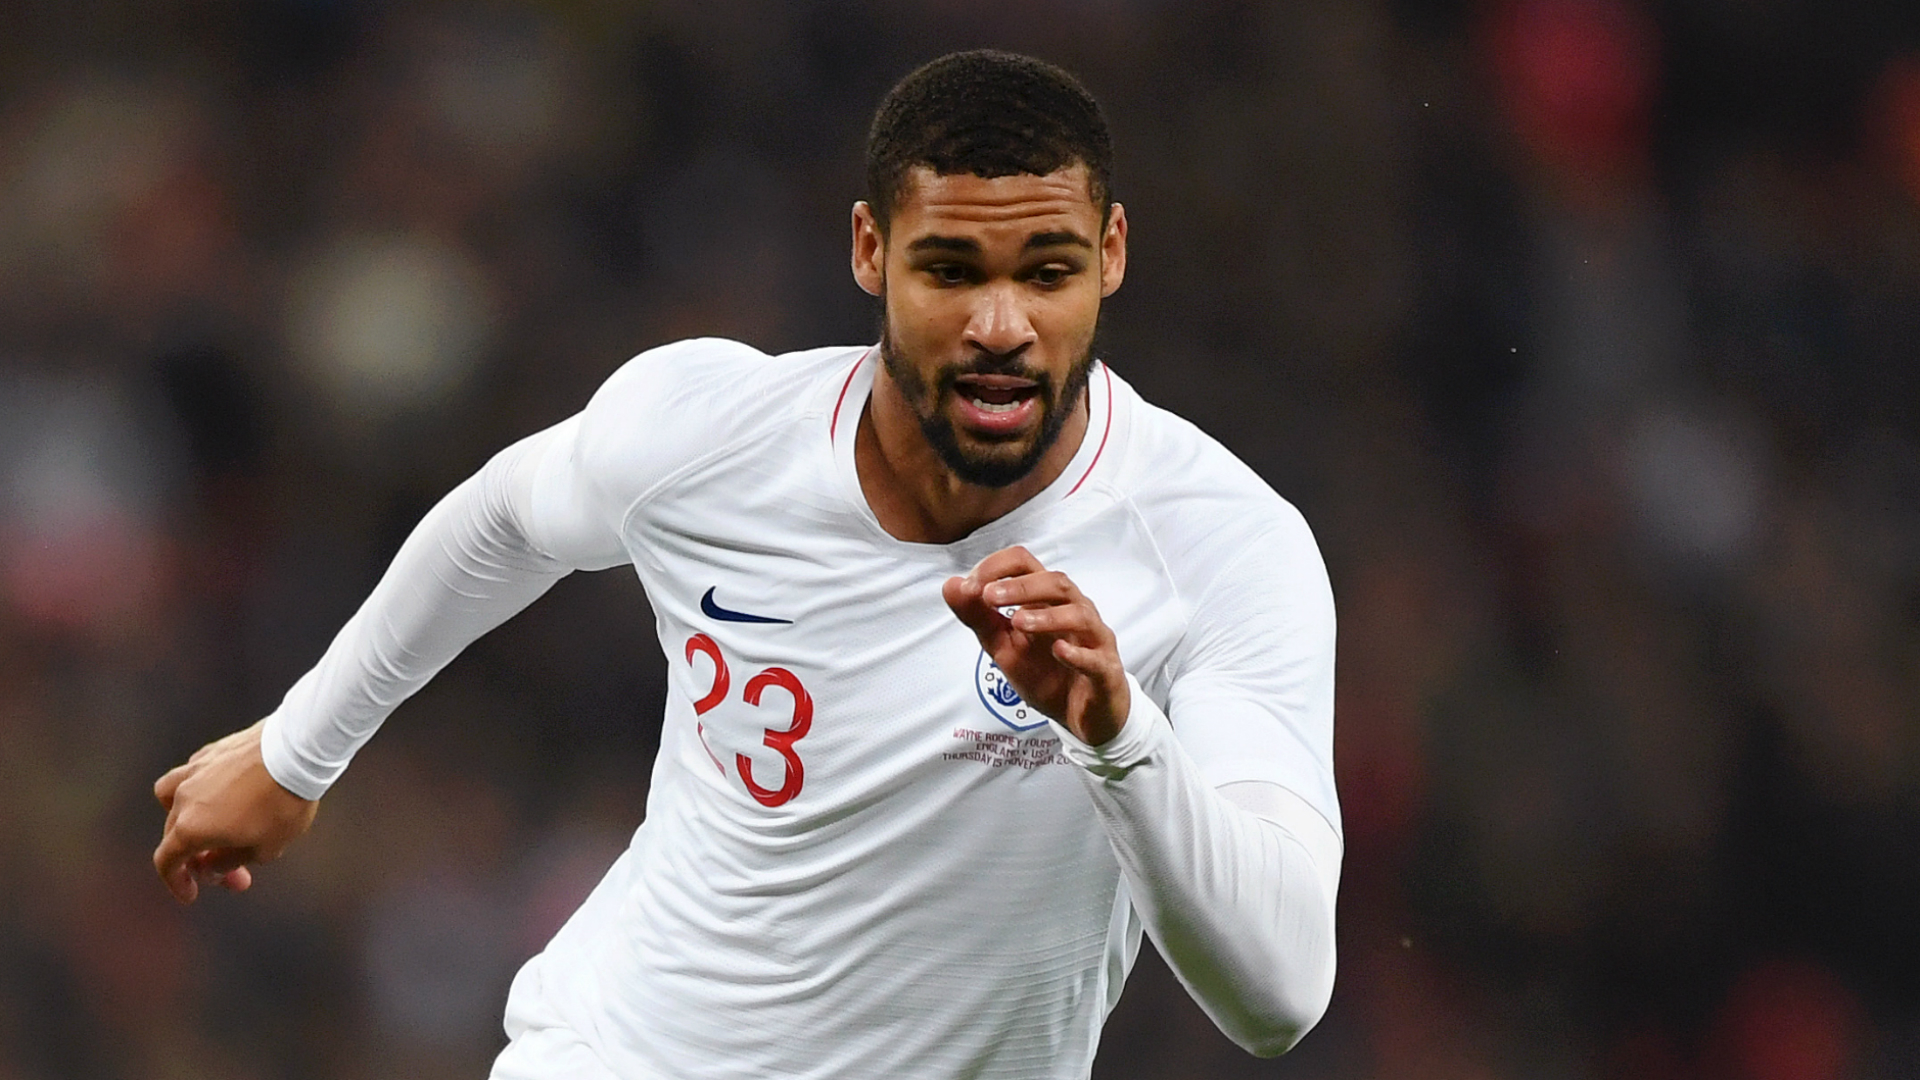 Ruben Loftus-Cheek has reportedly ruptured his Achilles and England manager Gareth Southgate sympathised with the Chelsea midfielder.